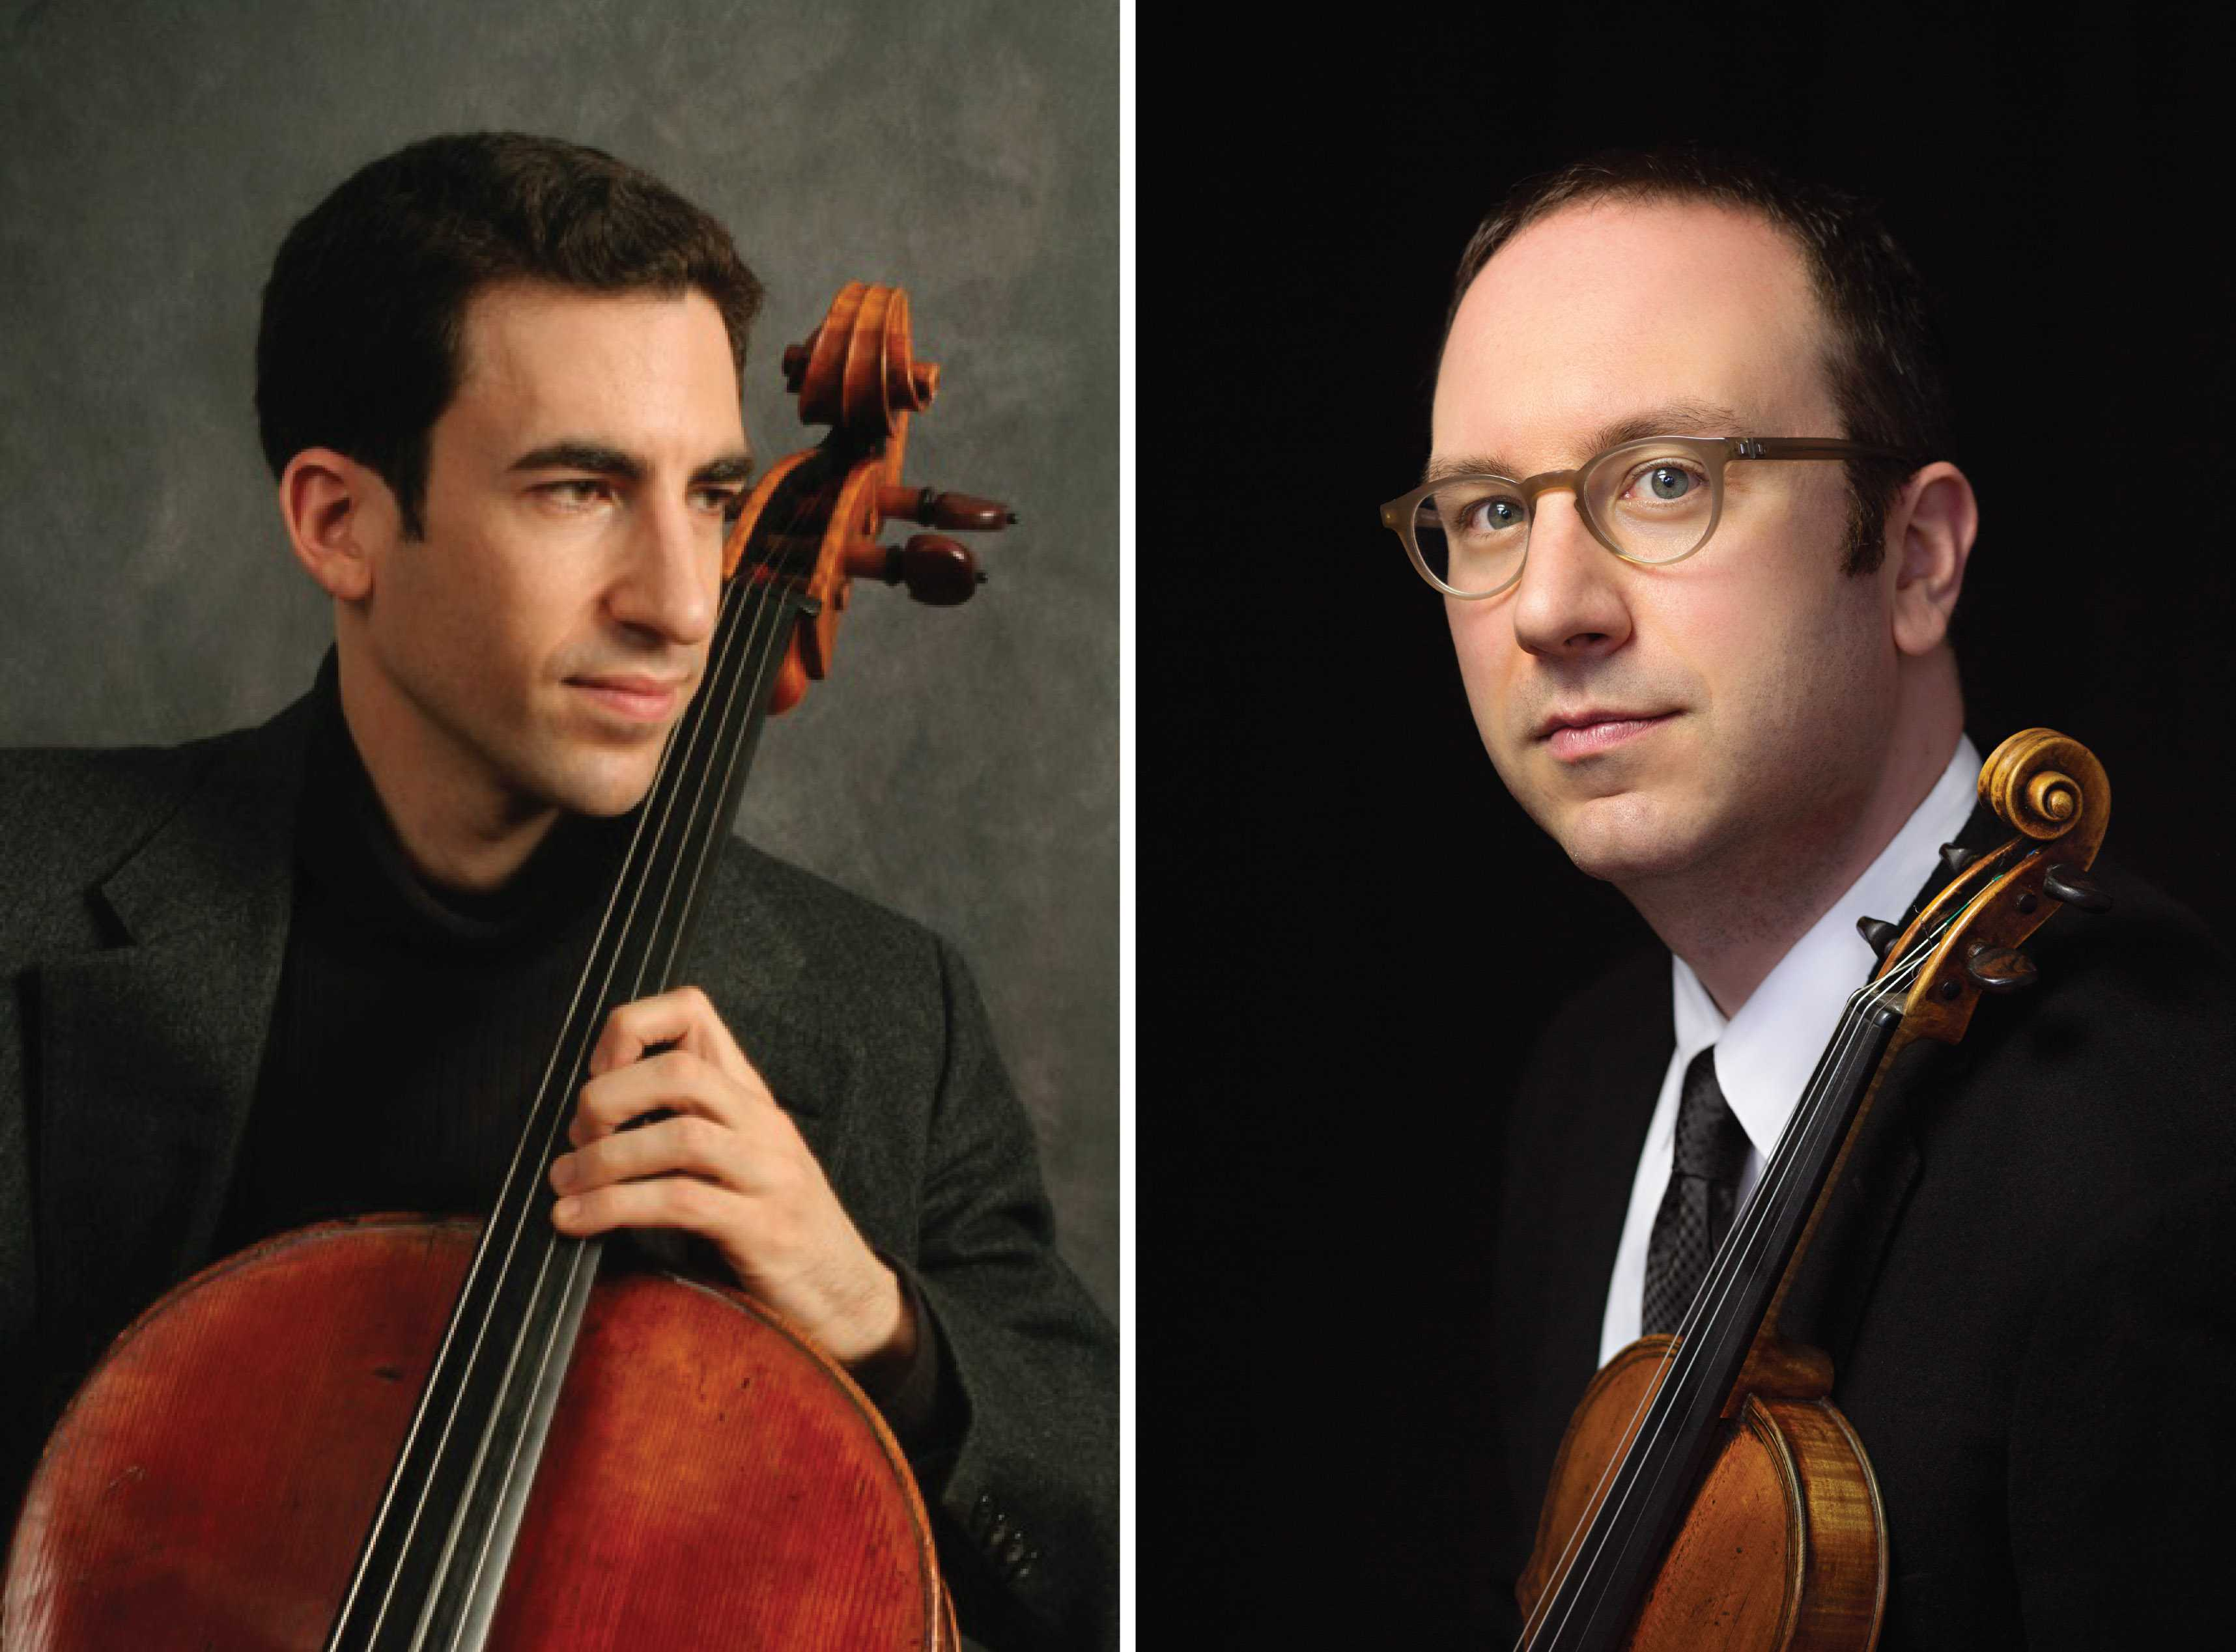 Conservatory professors Amir Eldan (left), cellist, and David Bowlin, OC '00, violinist, join director Rafael Jiménez and the Oberlin Orchestra for its first winter concert. They will both perform solos in Johannes Brahms' Concerto for Violin and Cello.